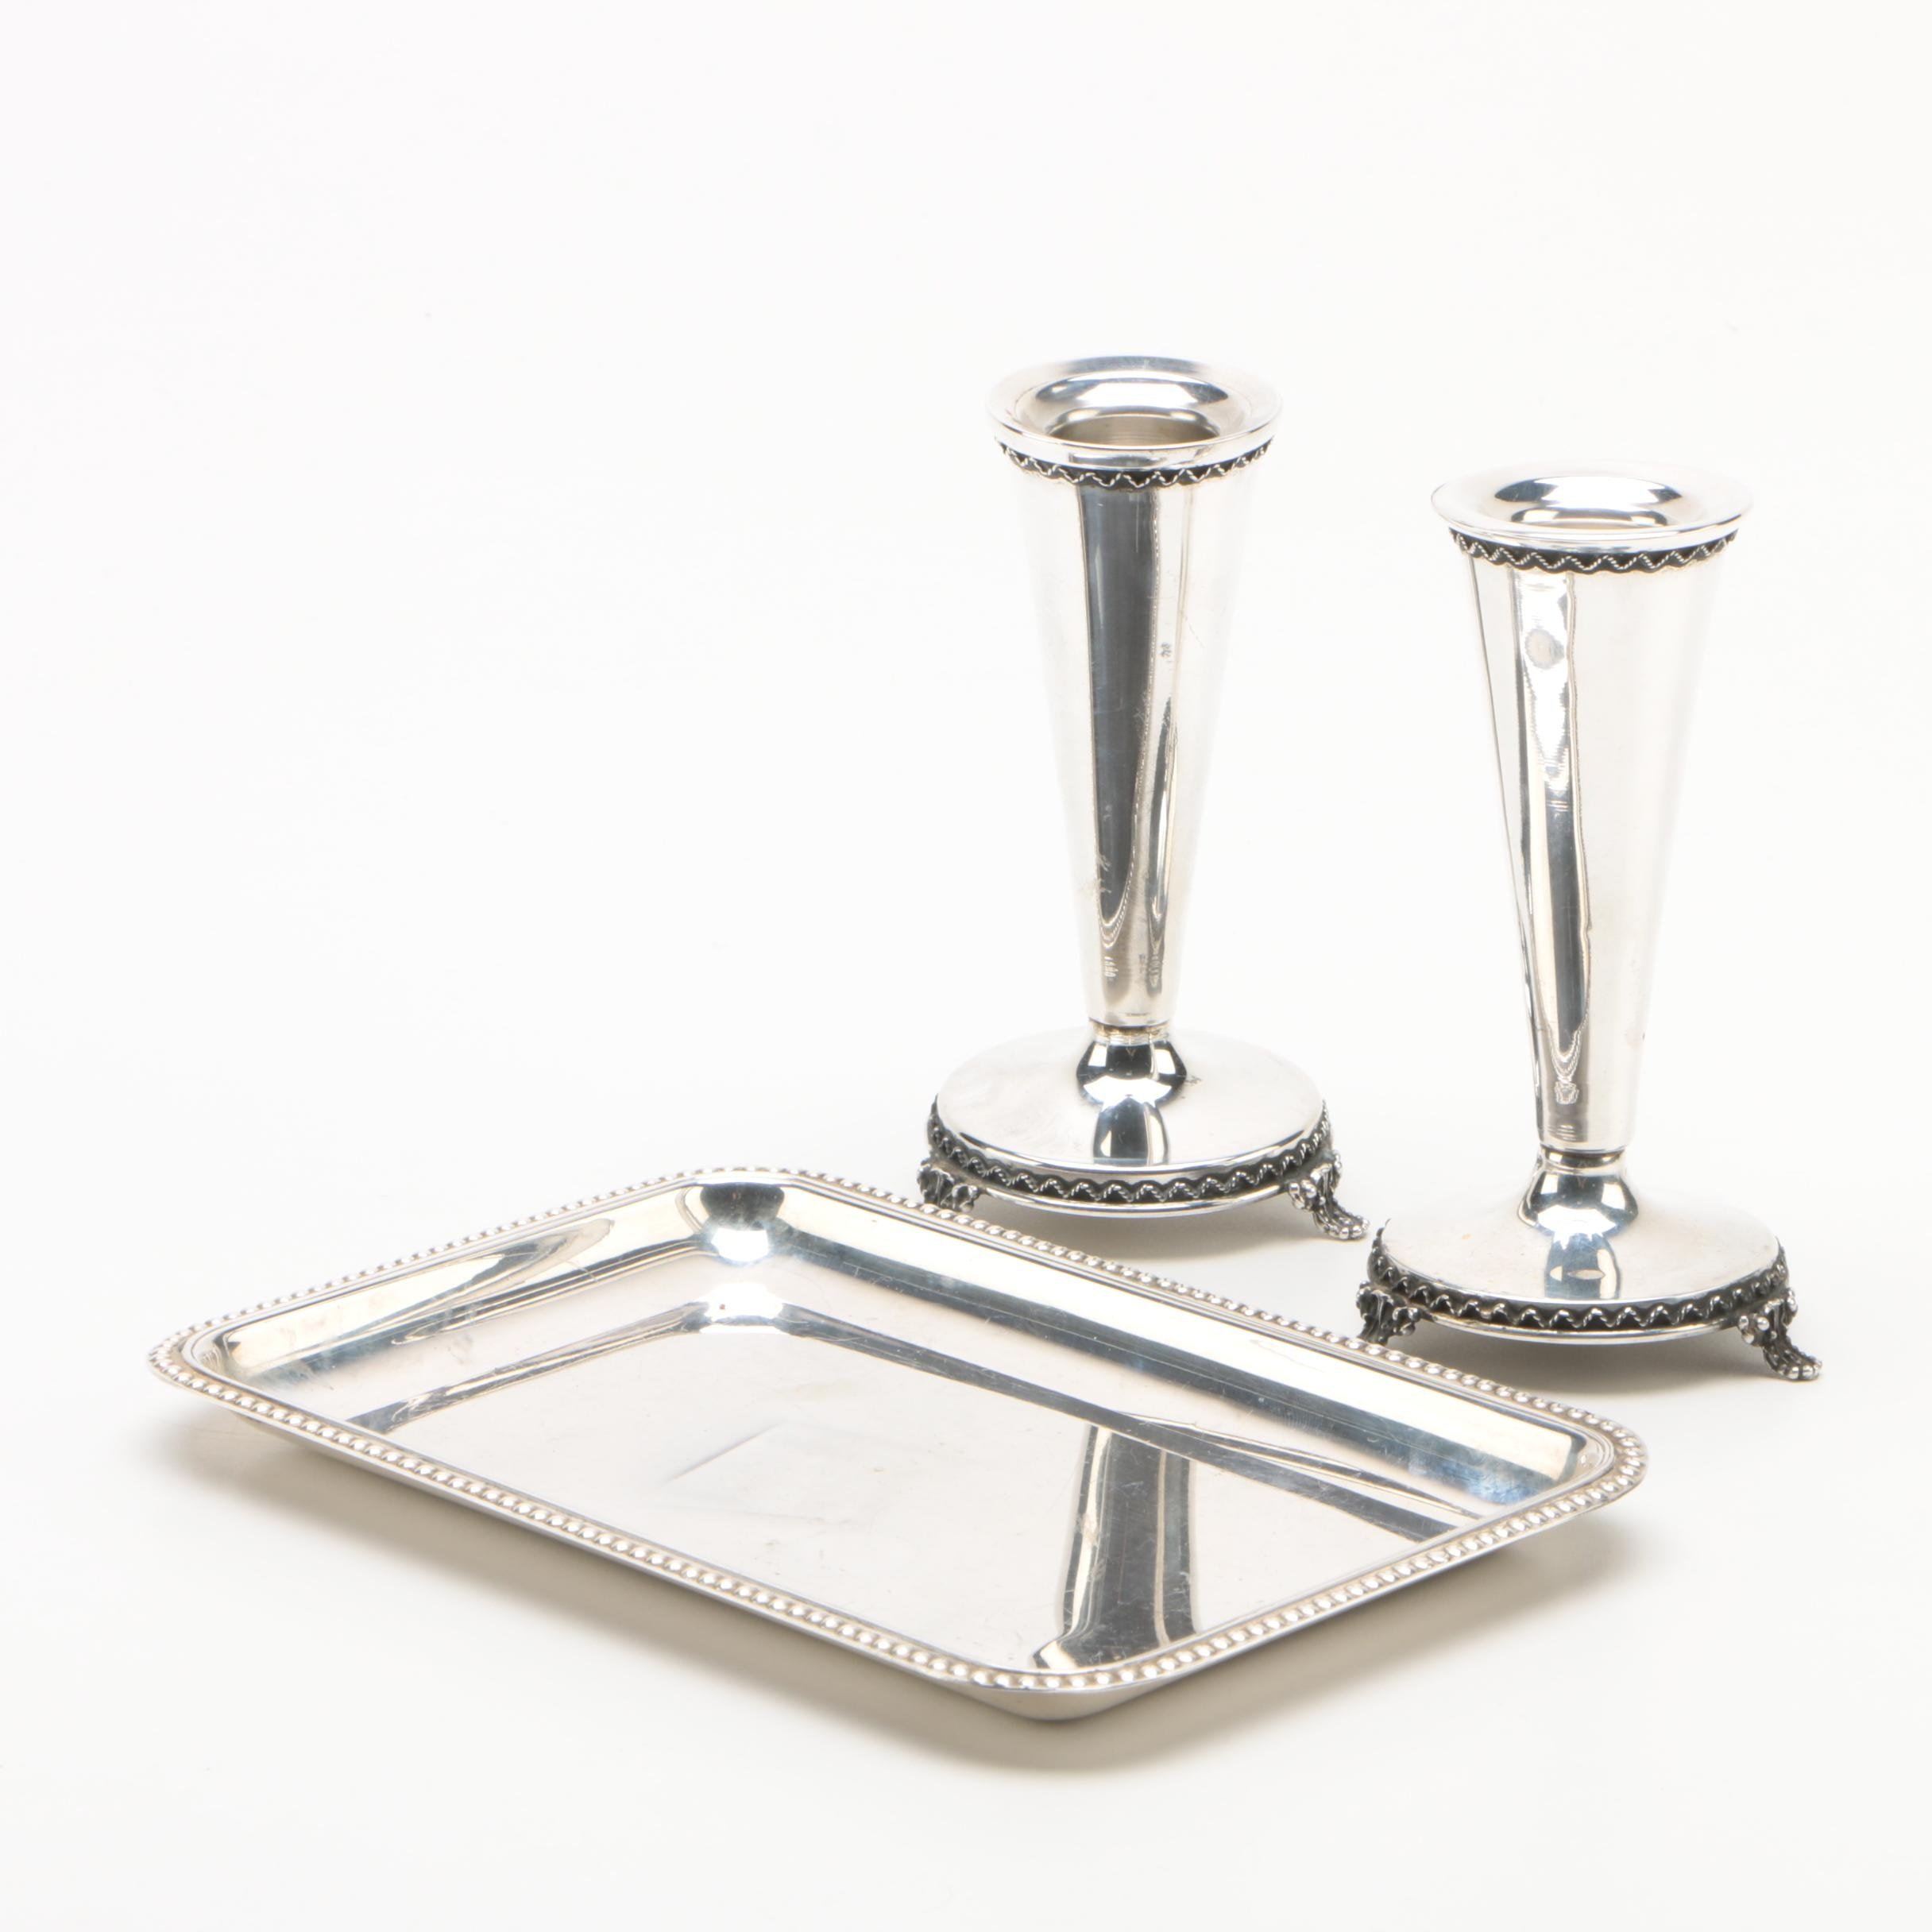 Hazorfim Sterling Silver Tray with Weighted Sterling Candleholders